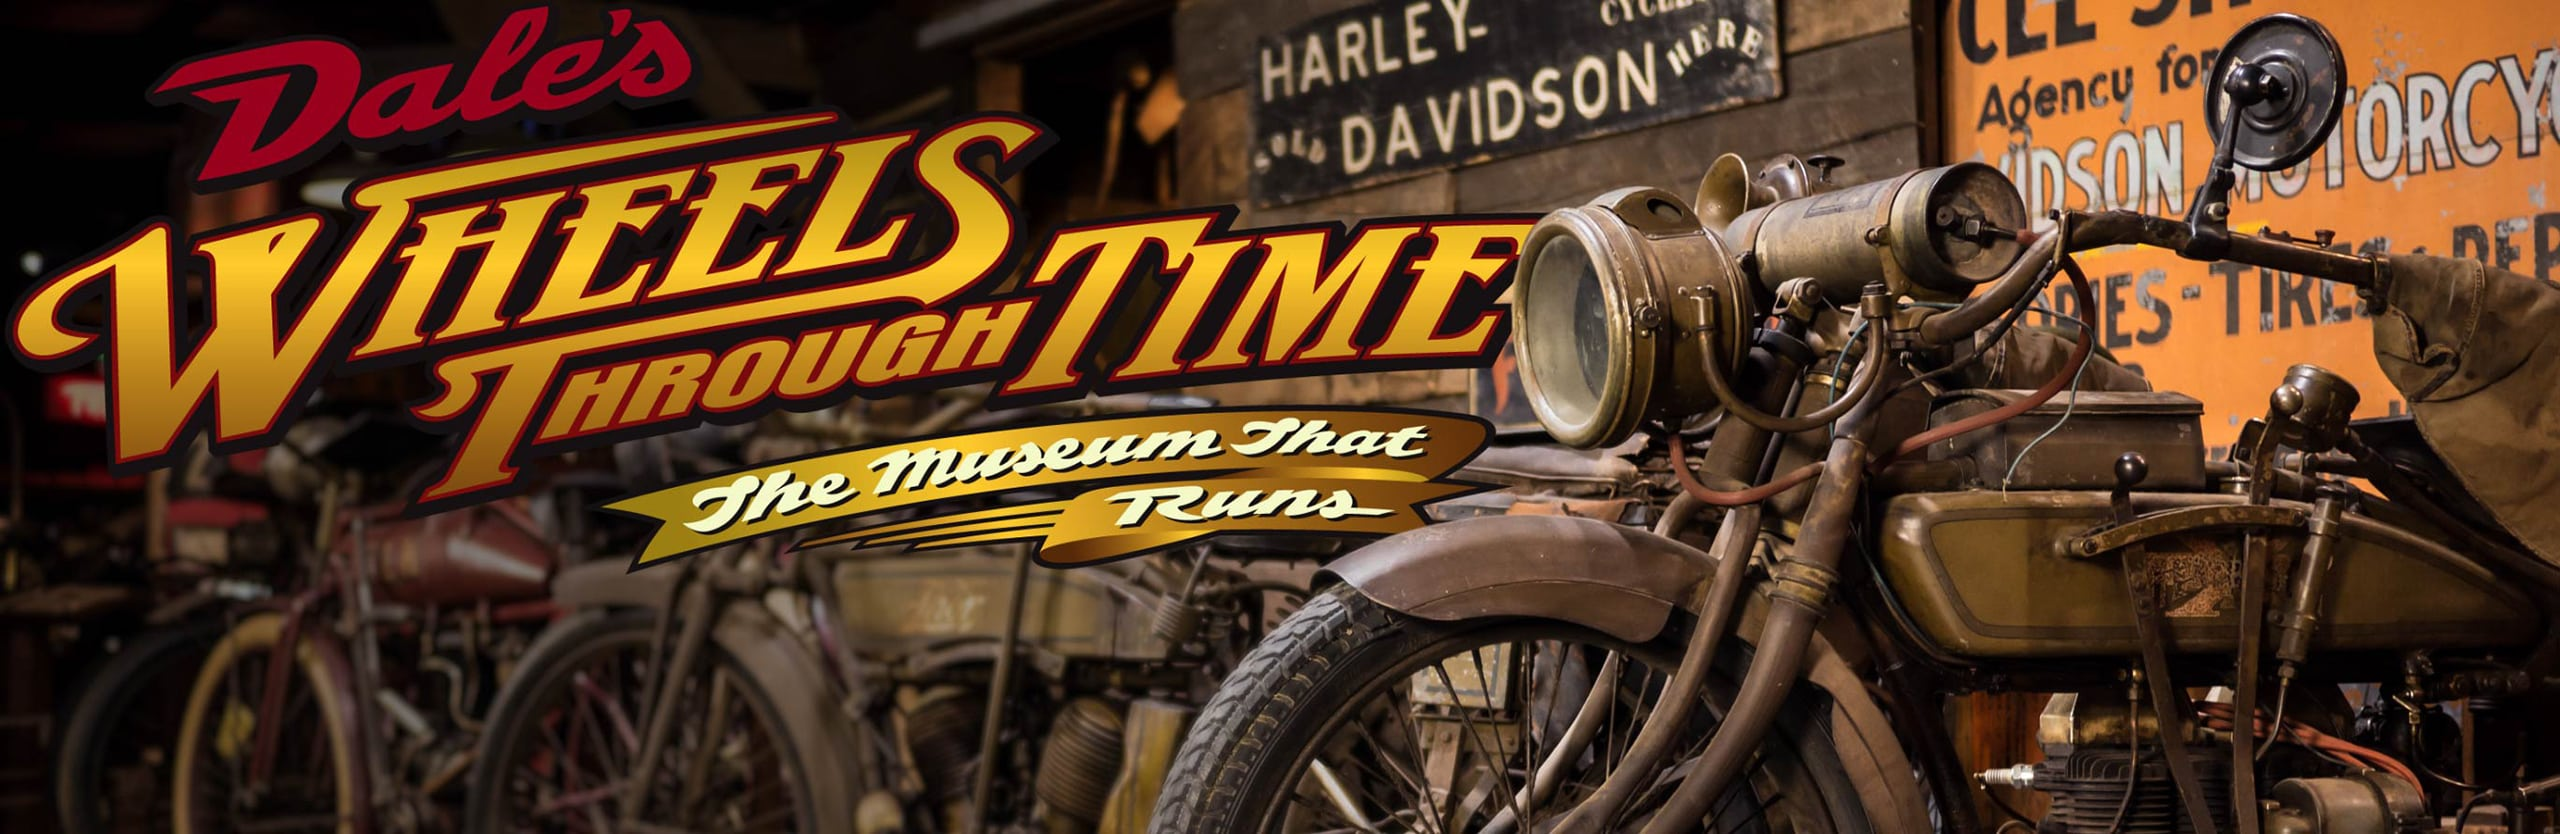 Home - Wheels Through Time